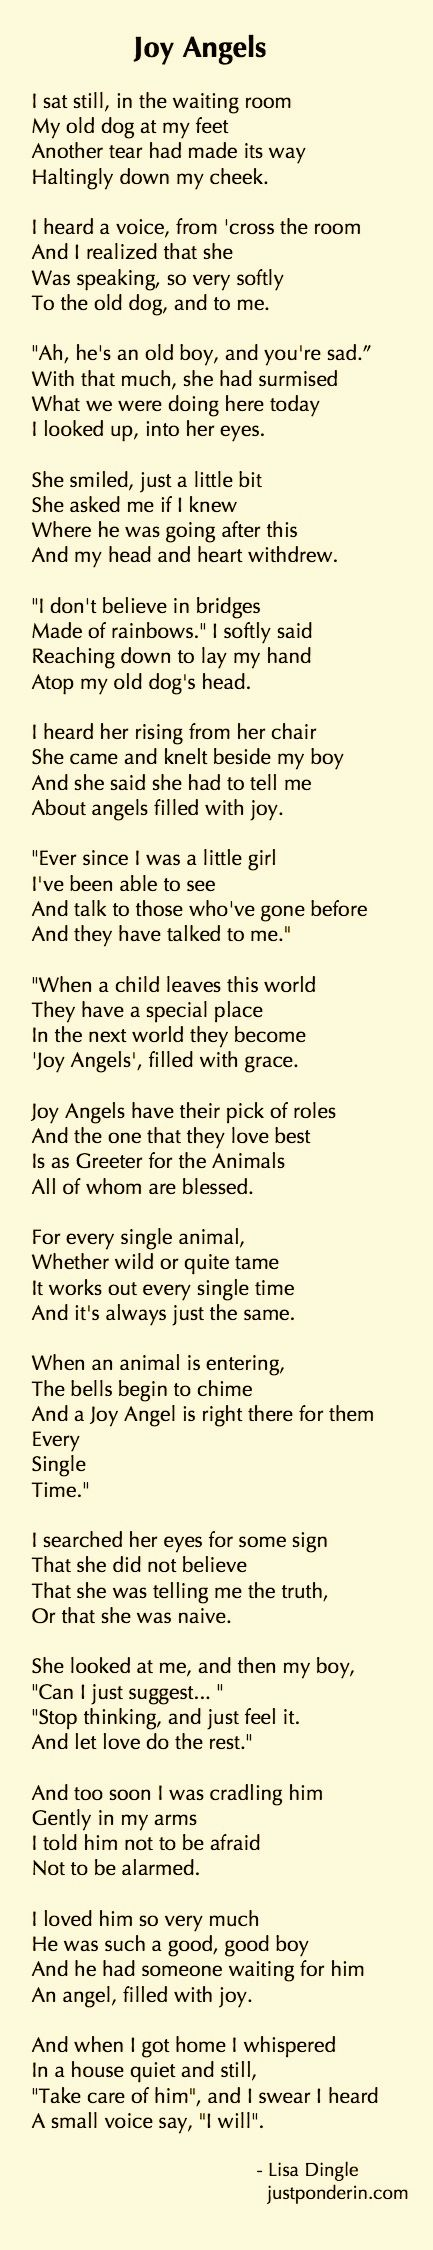 Joy Angels; For those who have loved and lost their beloved pets.